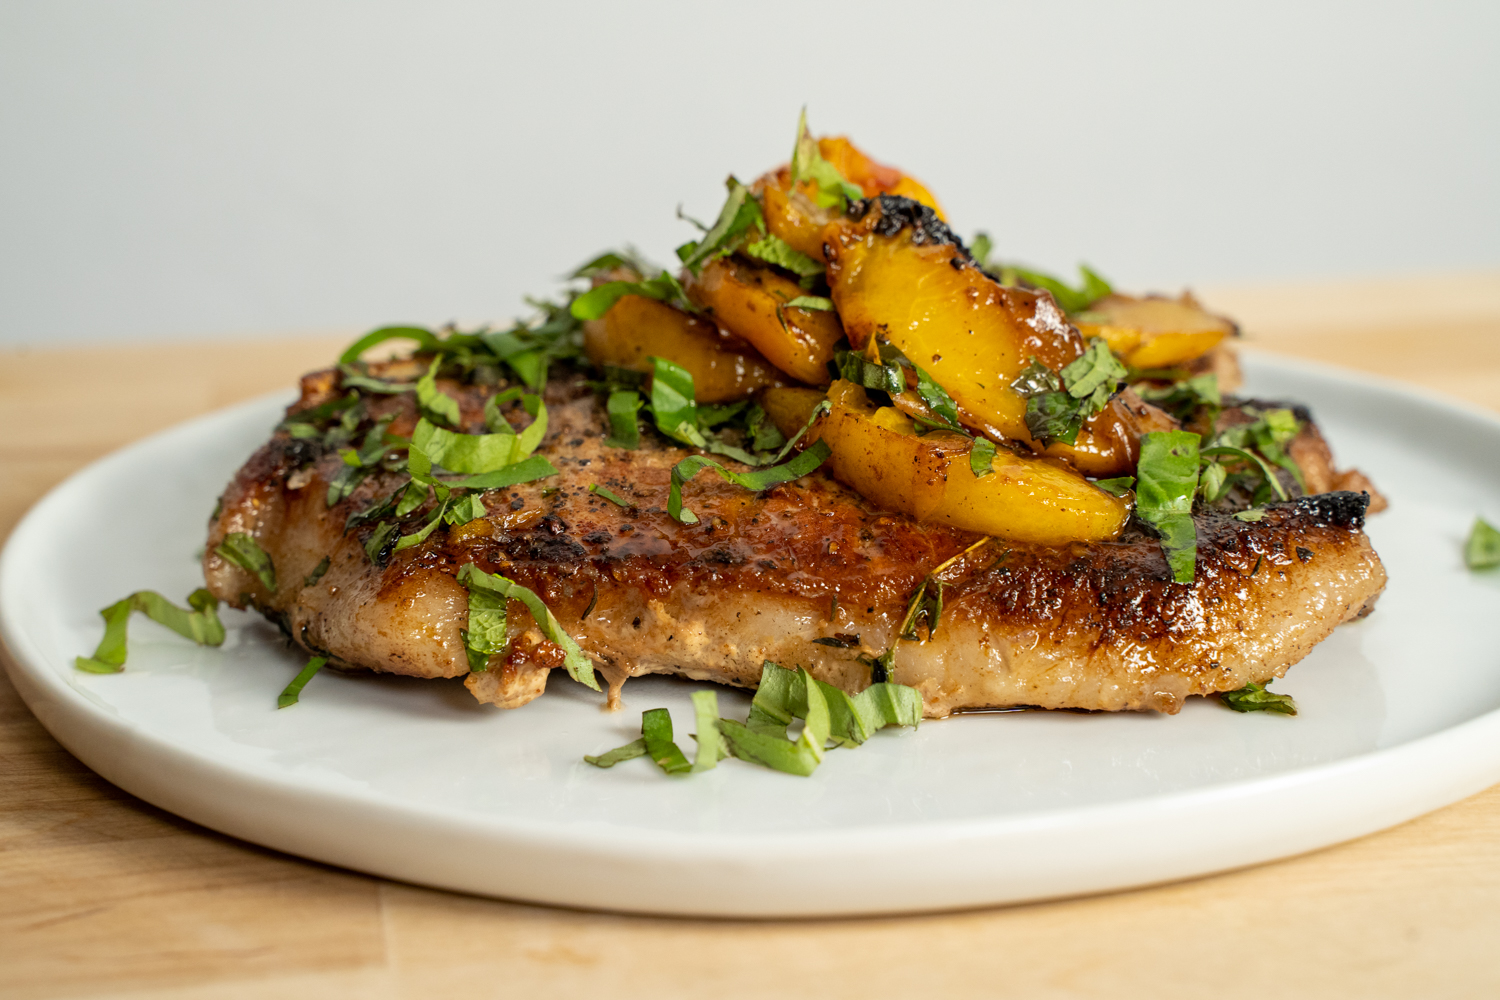 seared pork chop on a plate topped with peaches and herbs